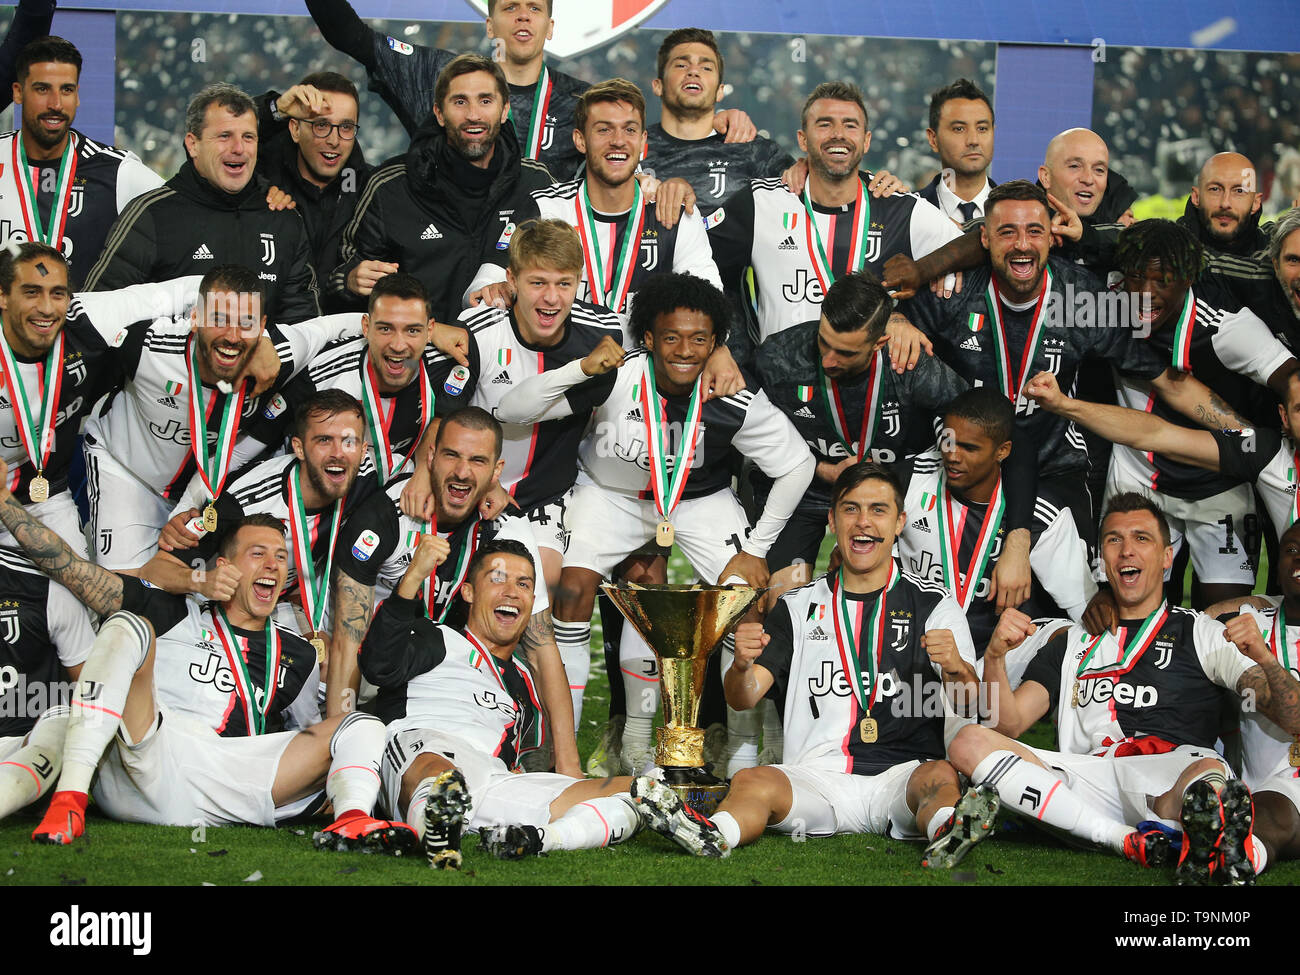 juventus team high resolution stock photography and images alamy https www alamy com turin may 19 20th apr 2019 fc juventus team celebrate winning their league during the trophy ceremony at the end of the serie a soccer match between fc juventus and atalanta in turin italy may 19 2019 fc juventus sealed the title with a 2 1 victory over fc fiorentina on april 20 2019 credit augusto casasolixinhuaalamy live news image246953750 html